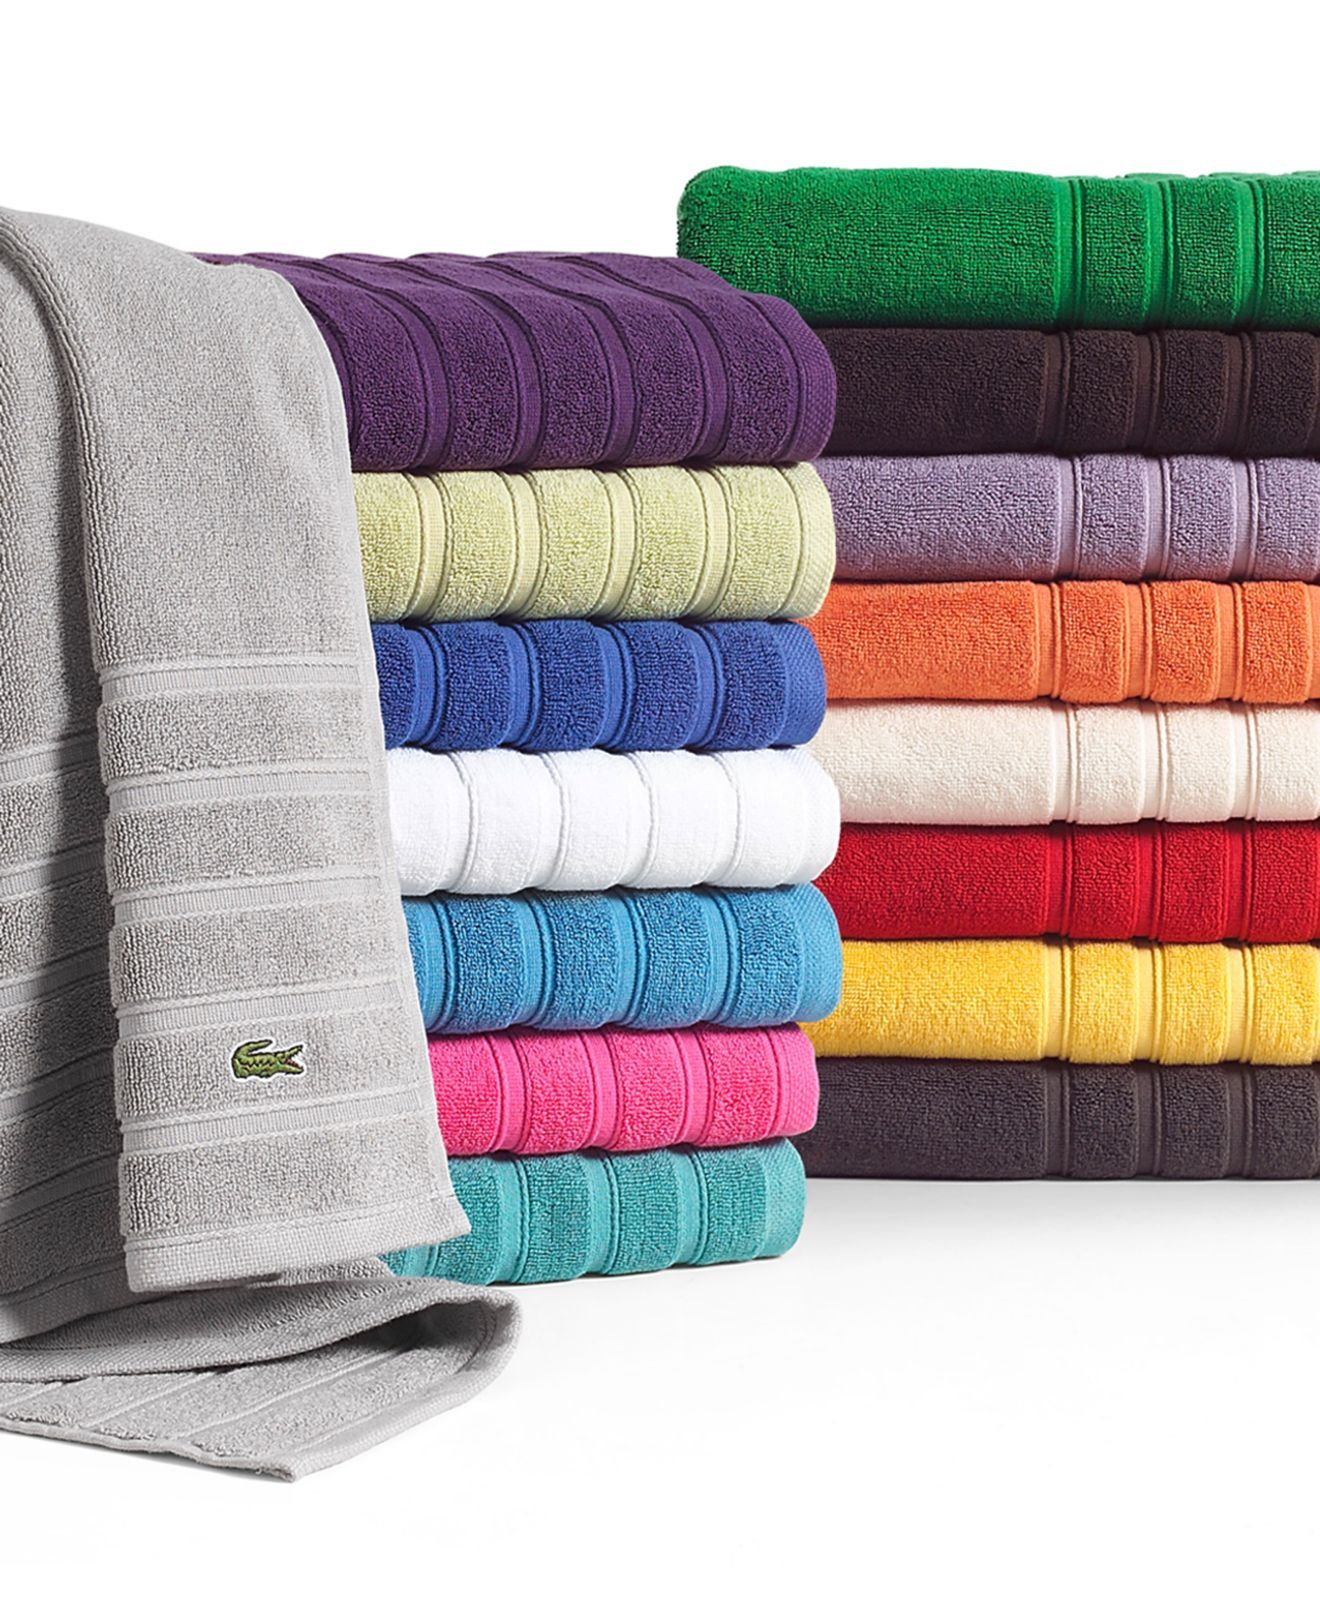 Lacoste Bath Towels Croc Solid Collection Bath Towels Bed